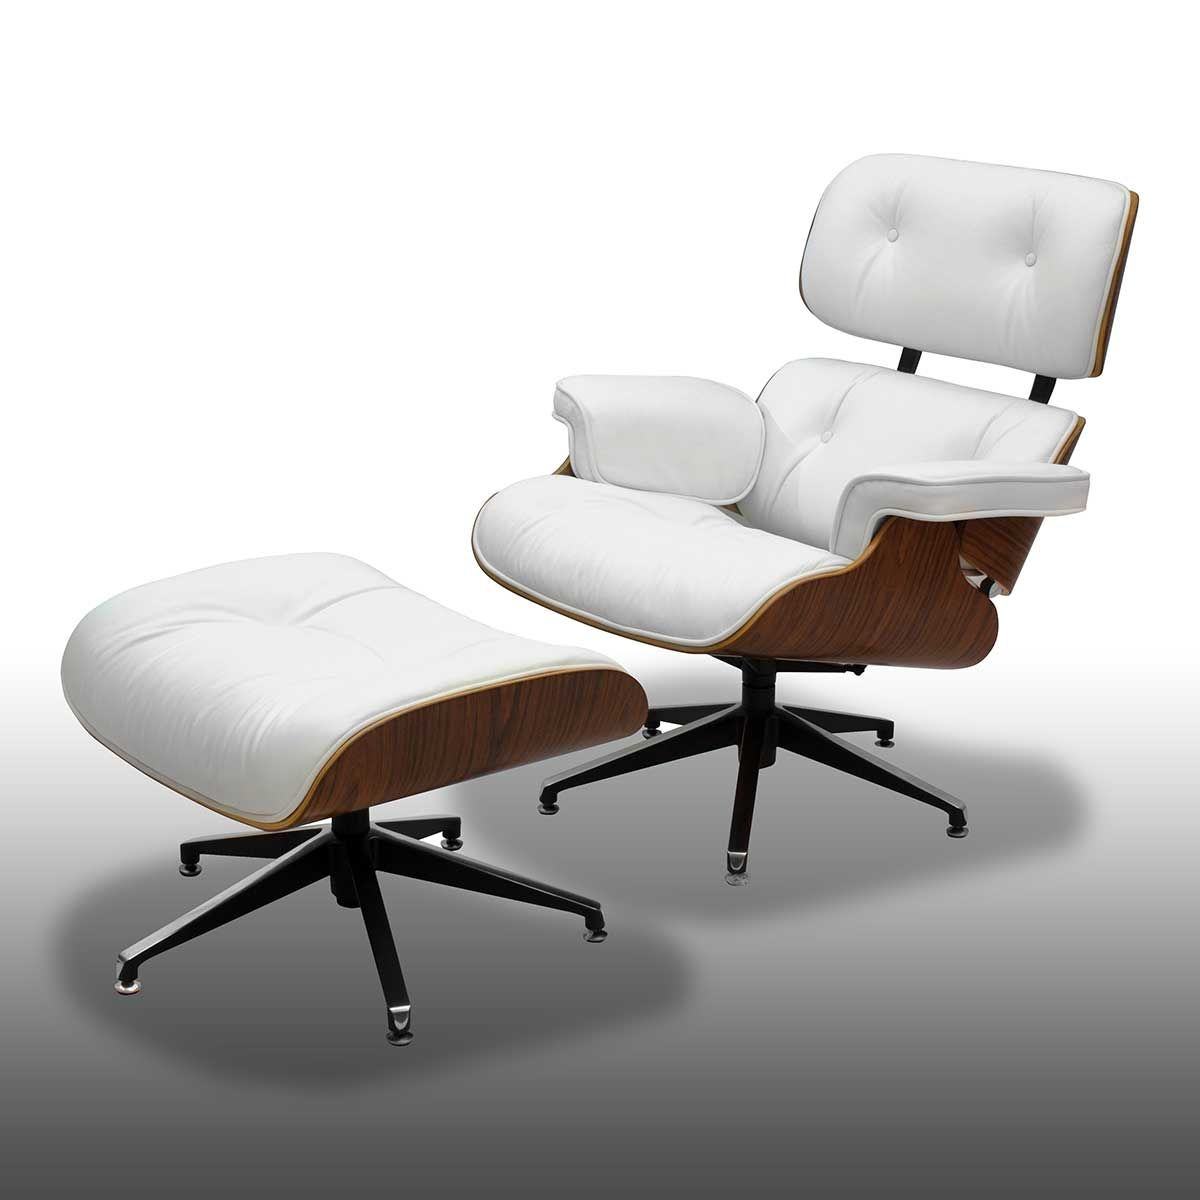 Charles Eames Chair Lounge Chair And Ottoman Charles Eames Herman Miller